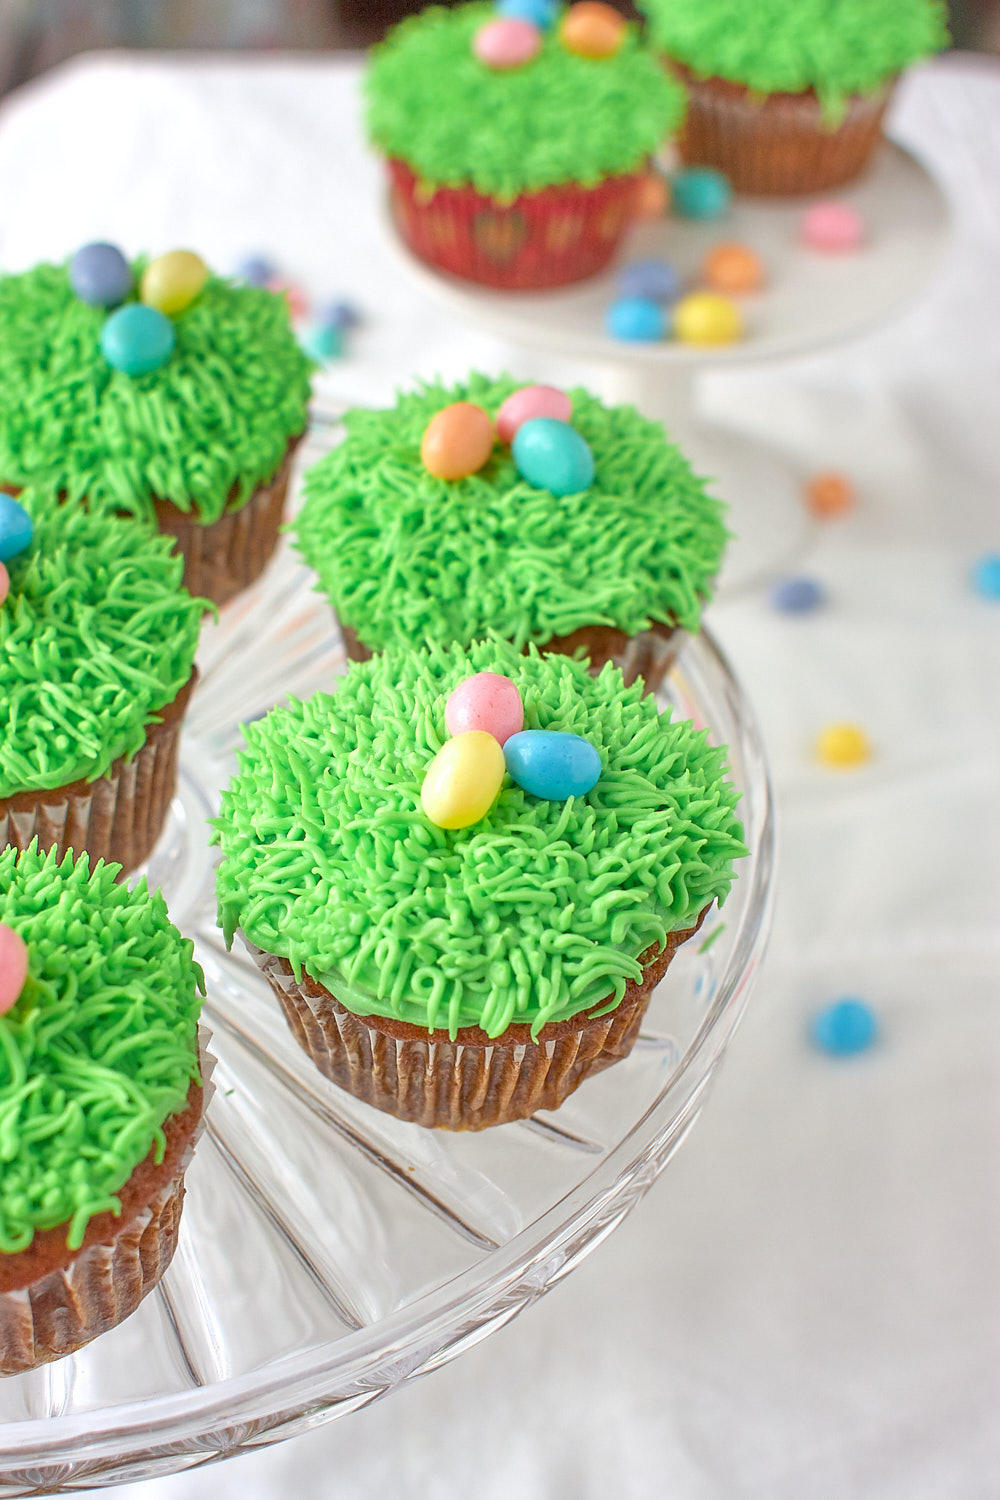 Carrot cupcakes with green grass frosting and jellybeans on a cake stand.